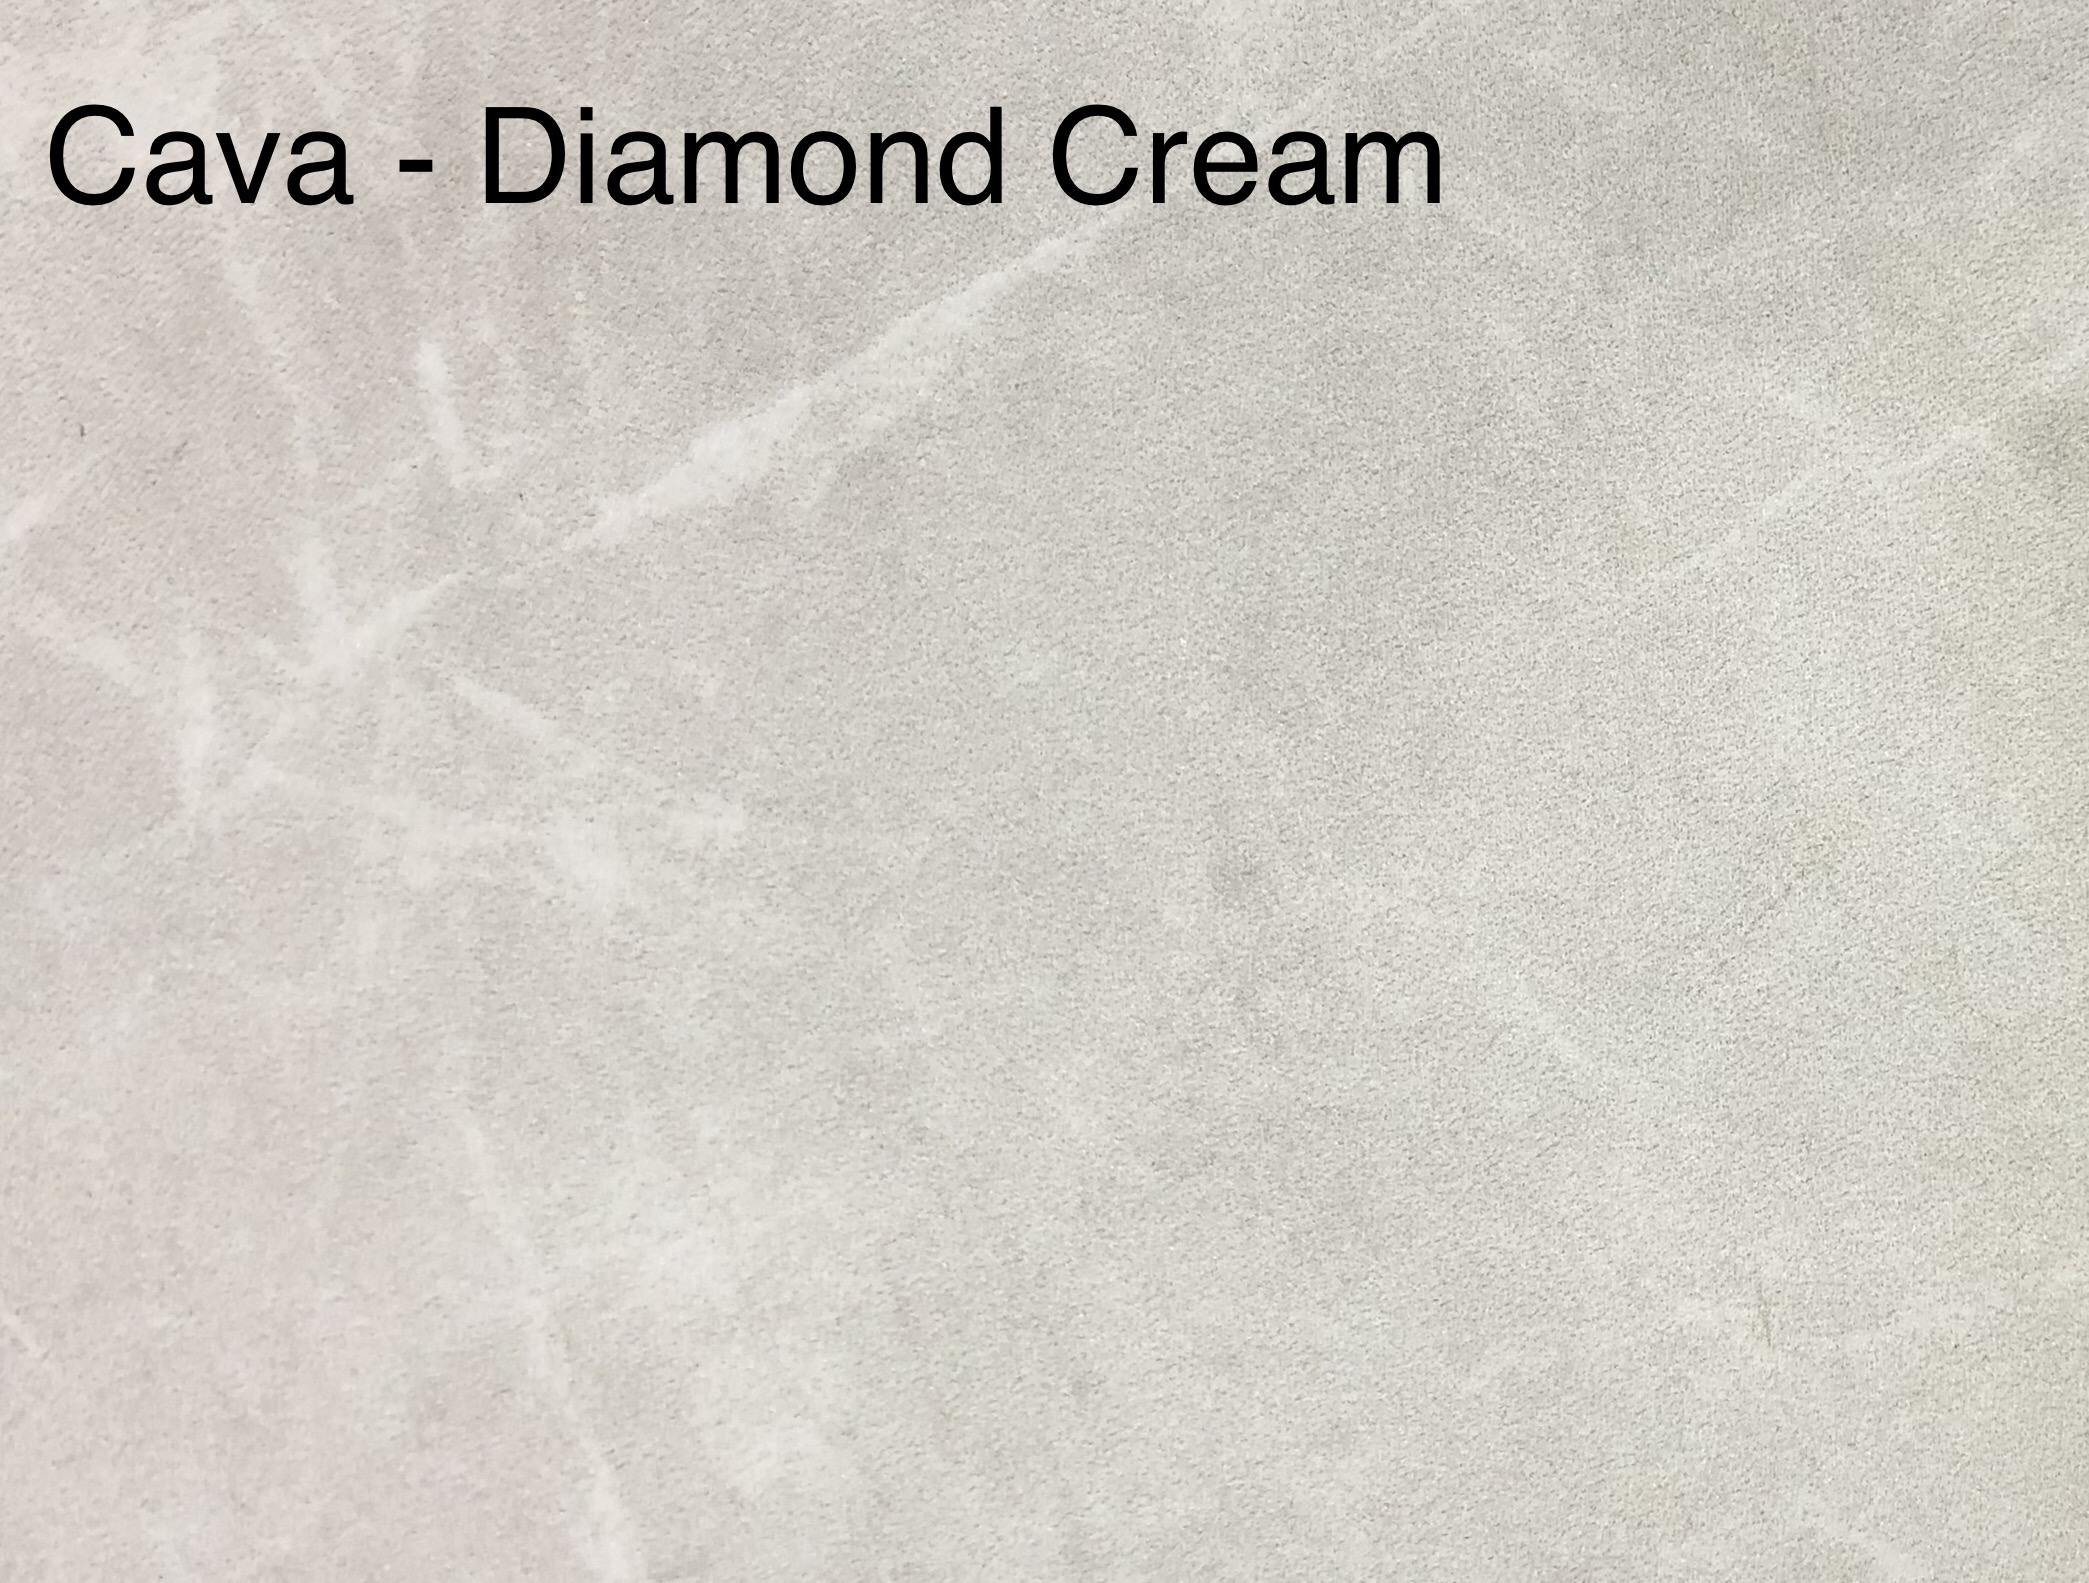 CAVA - DIAMOND CREAM